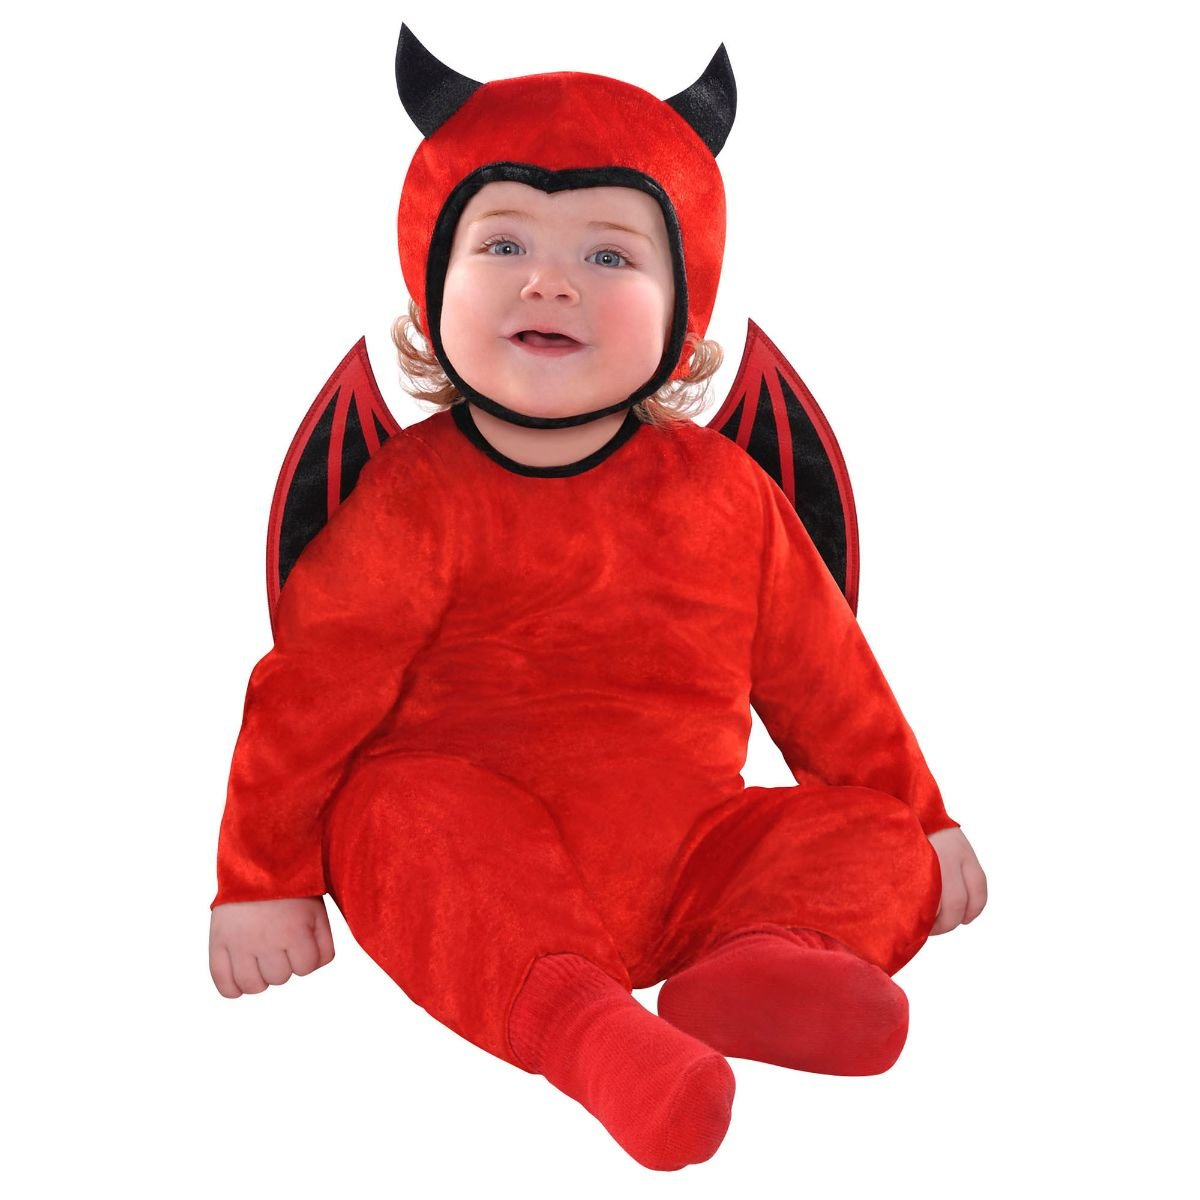 Baby Cute as a Devil Costume - 6-12 Months by amscan